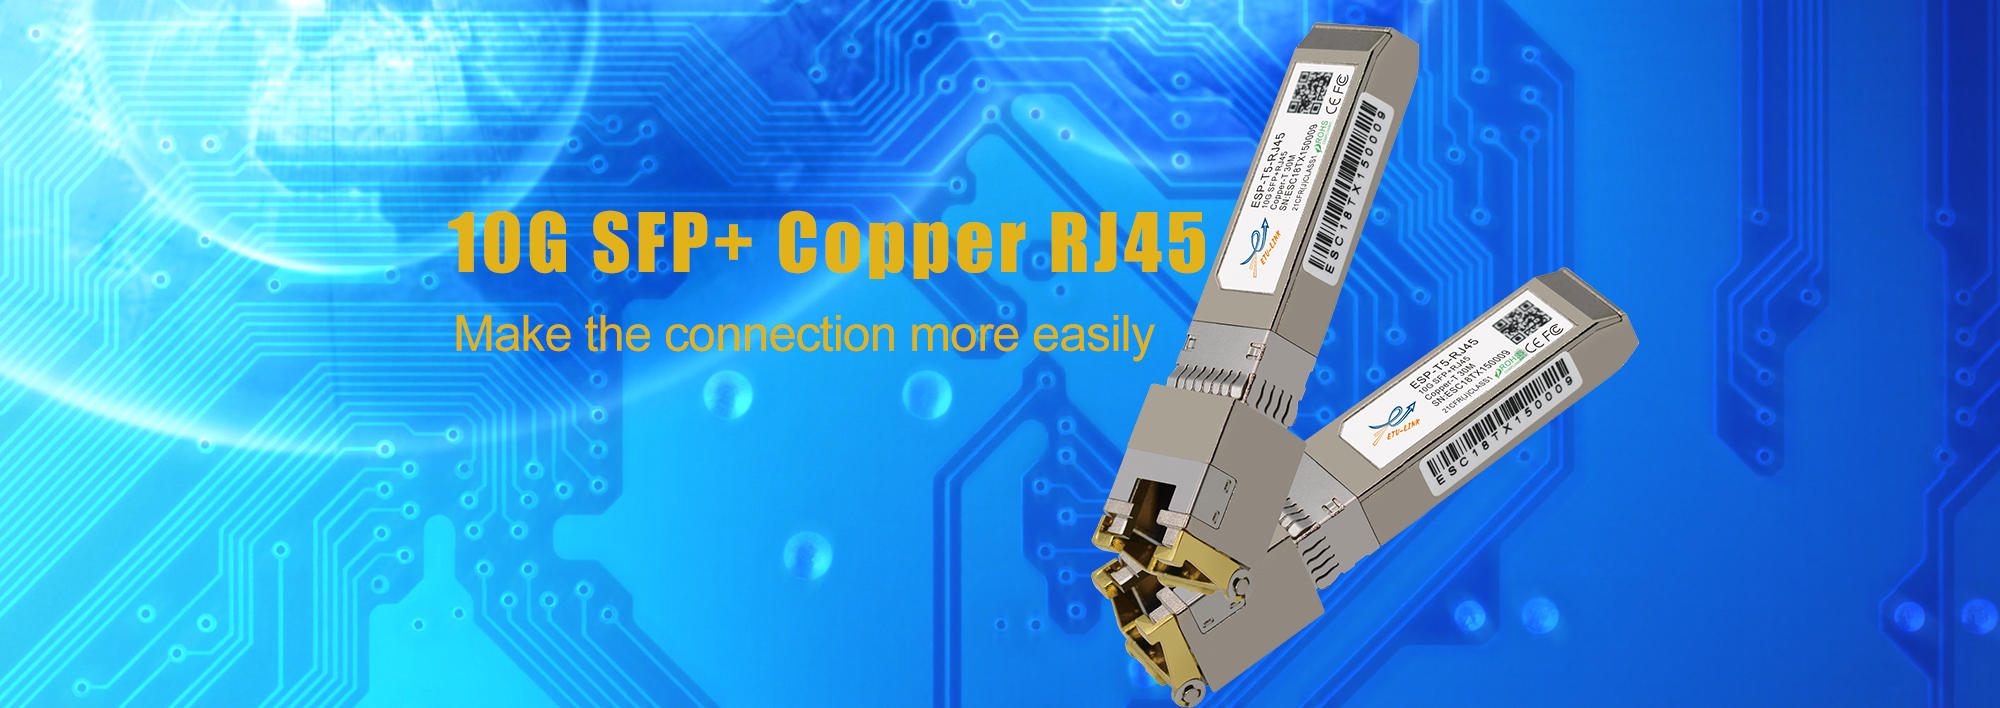 SFP+ Optical Transceivers